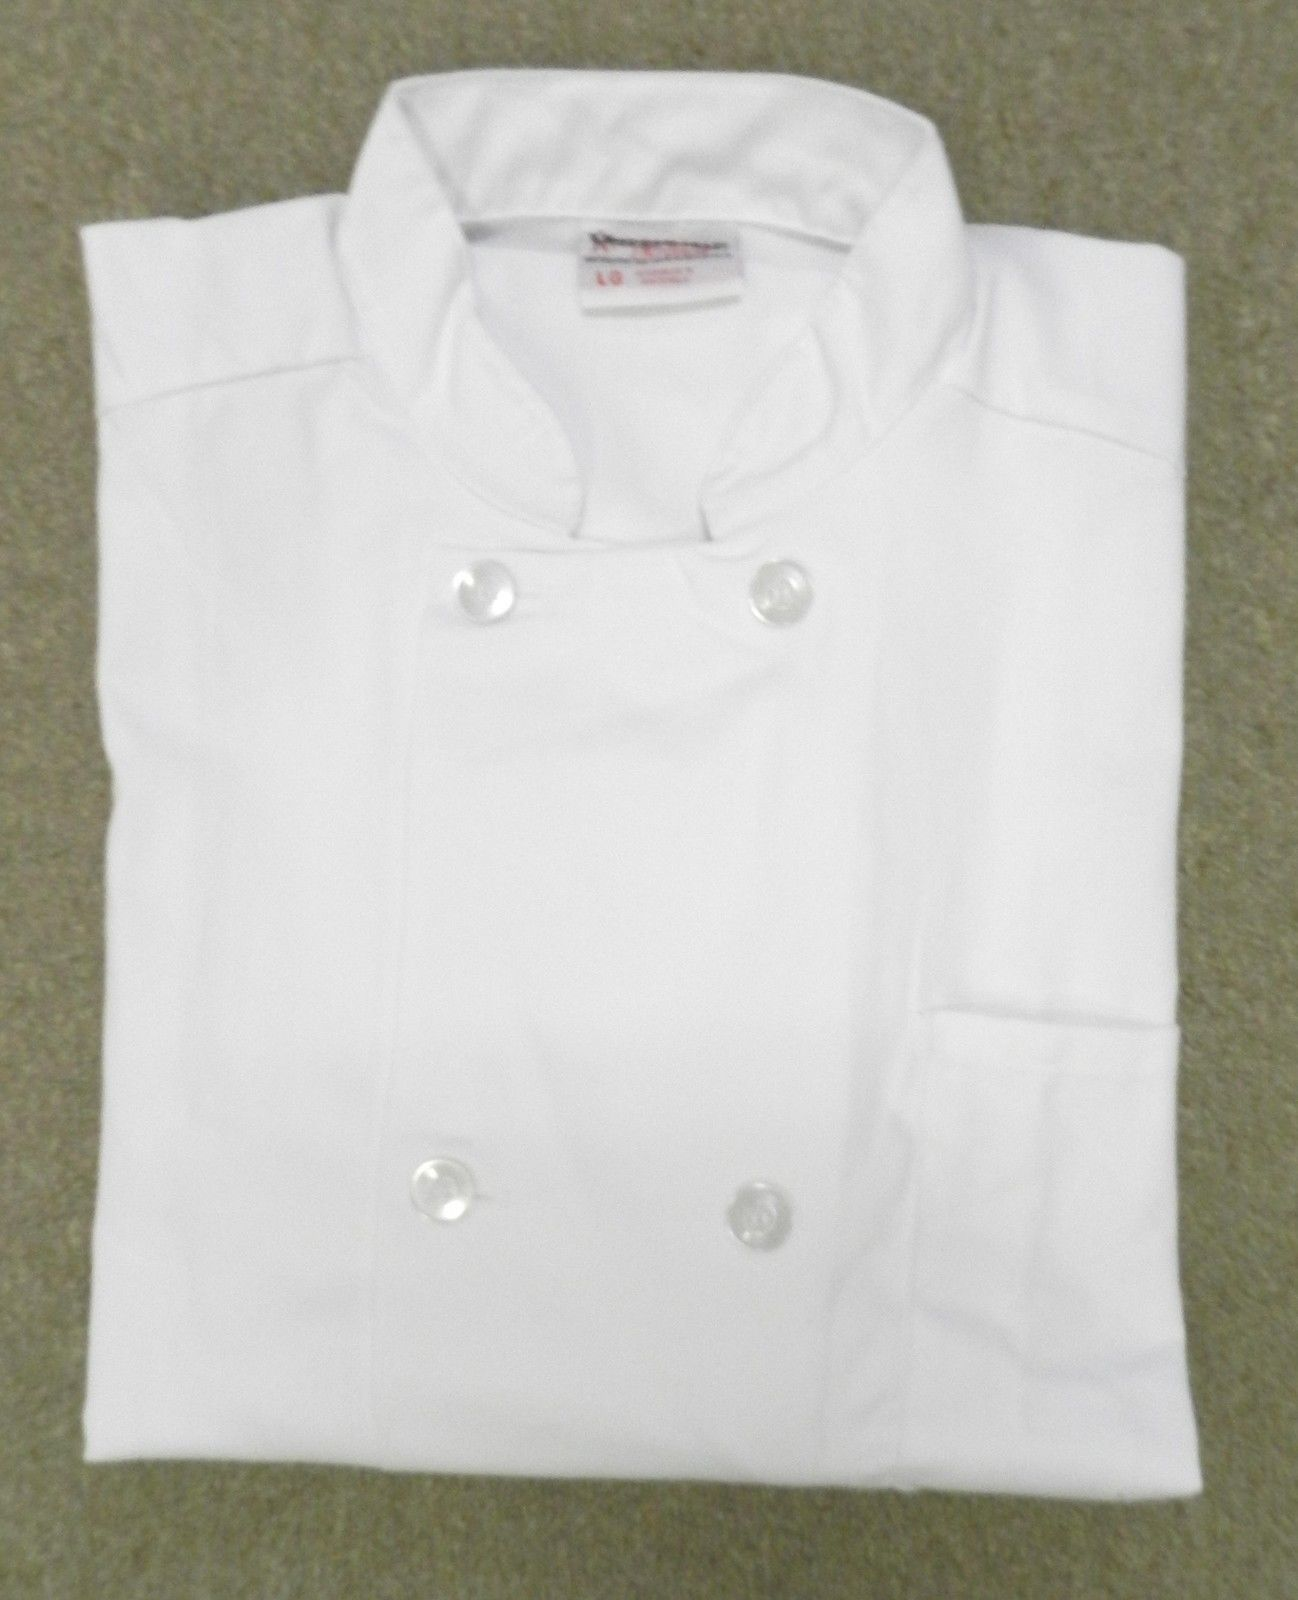 Uncommon Threads JS400 Restaurant Uniform Executive Chef Coat Jacket White L New